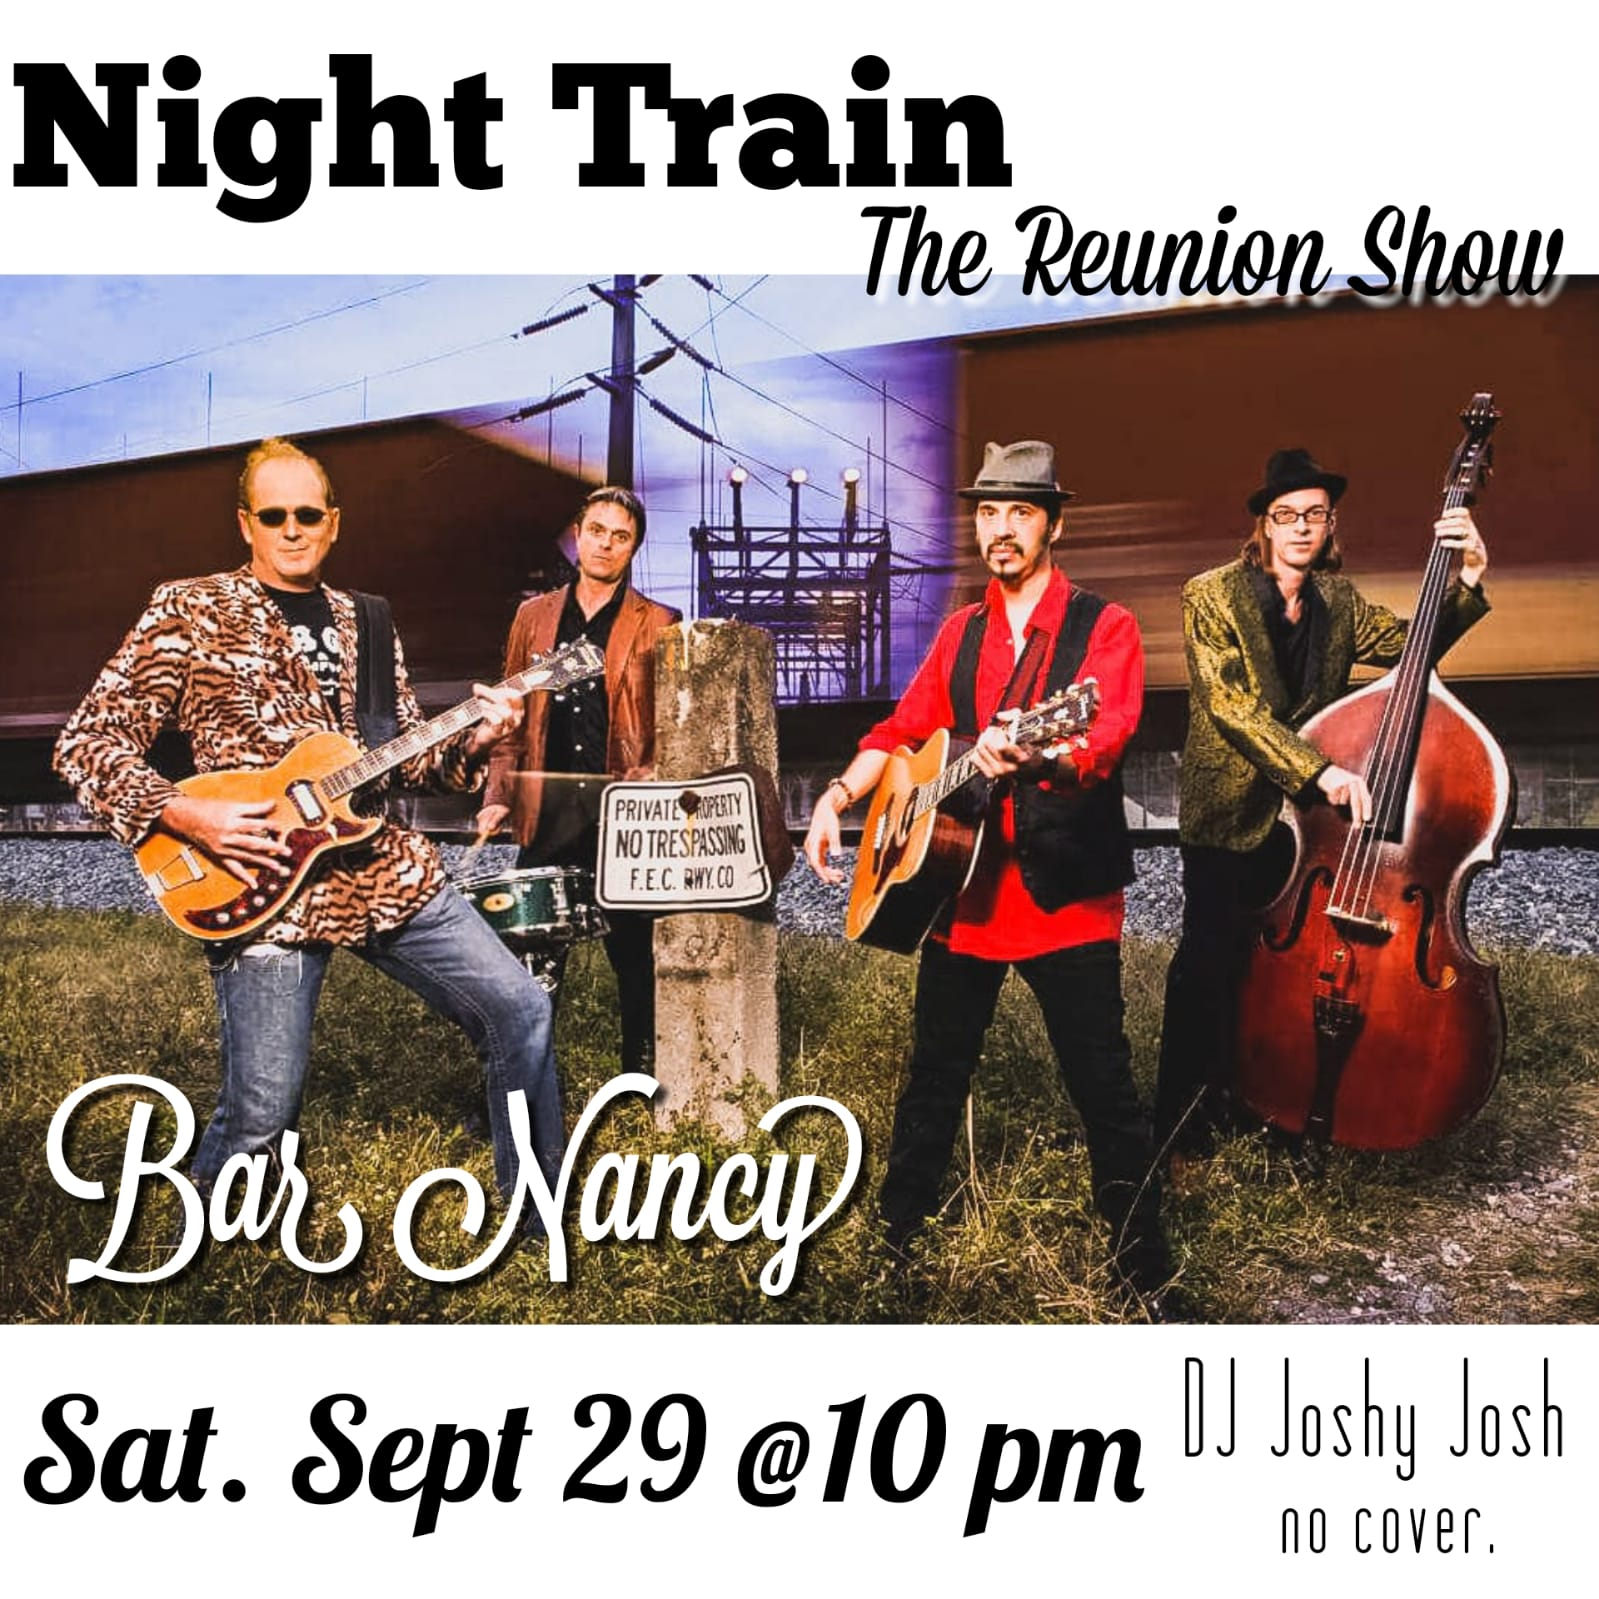 NIGHT TRAIN - THE REUNION SHOW - @ BAR NANCY - SAT SEP 29 - 10PM - NO COVER - DJ JOSHY JOSH